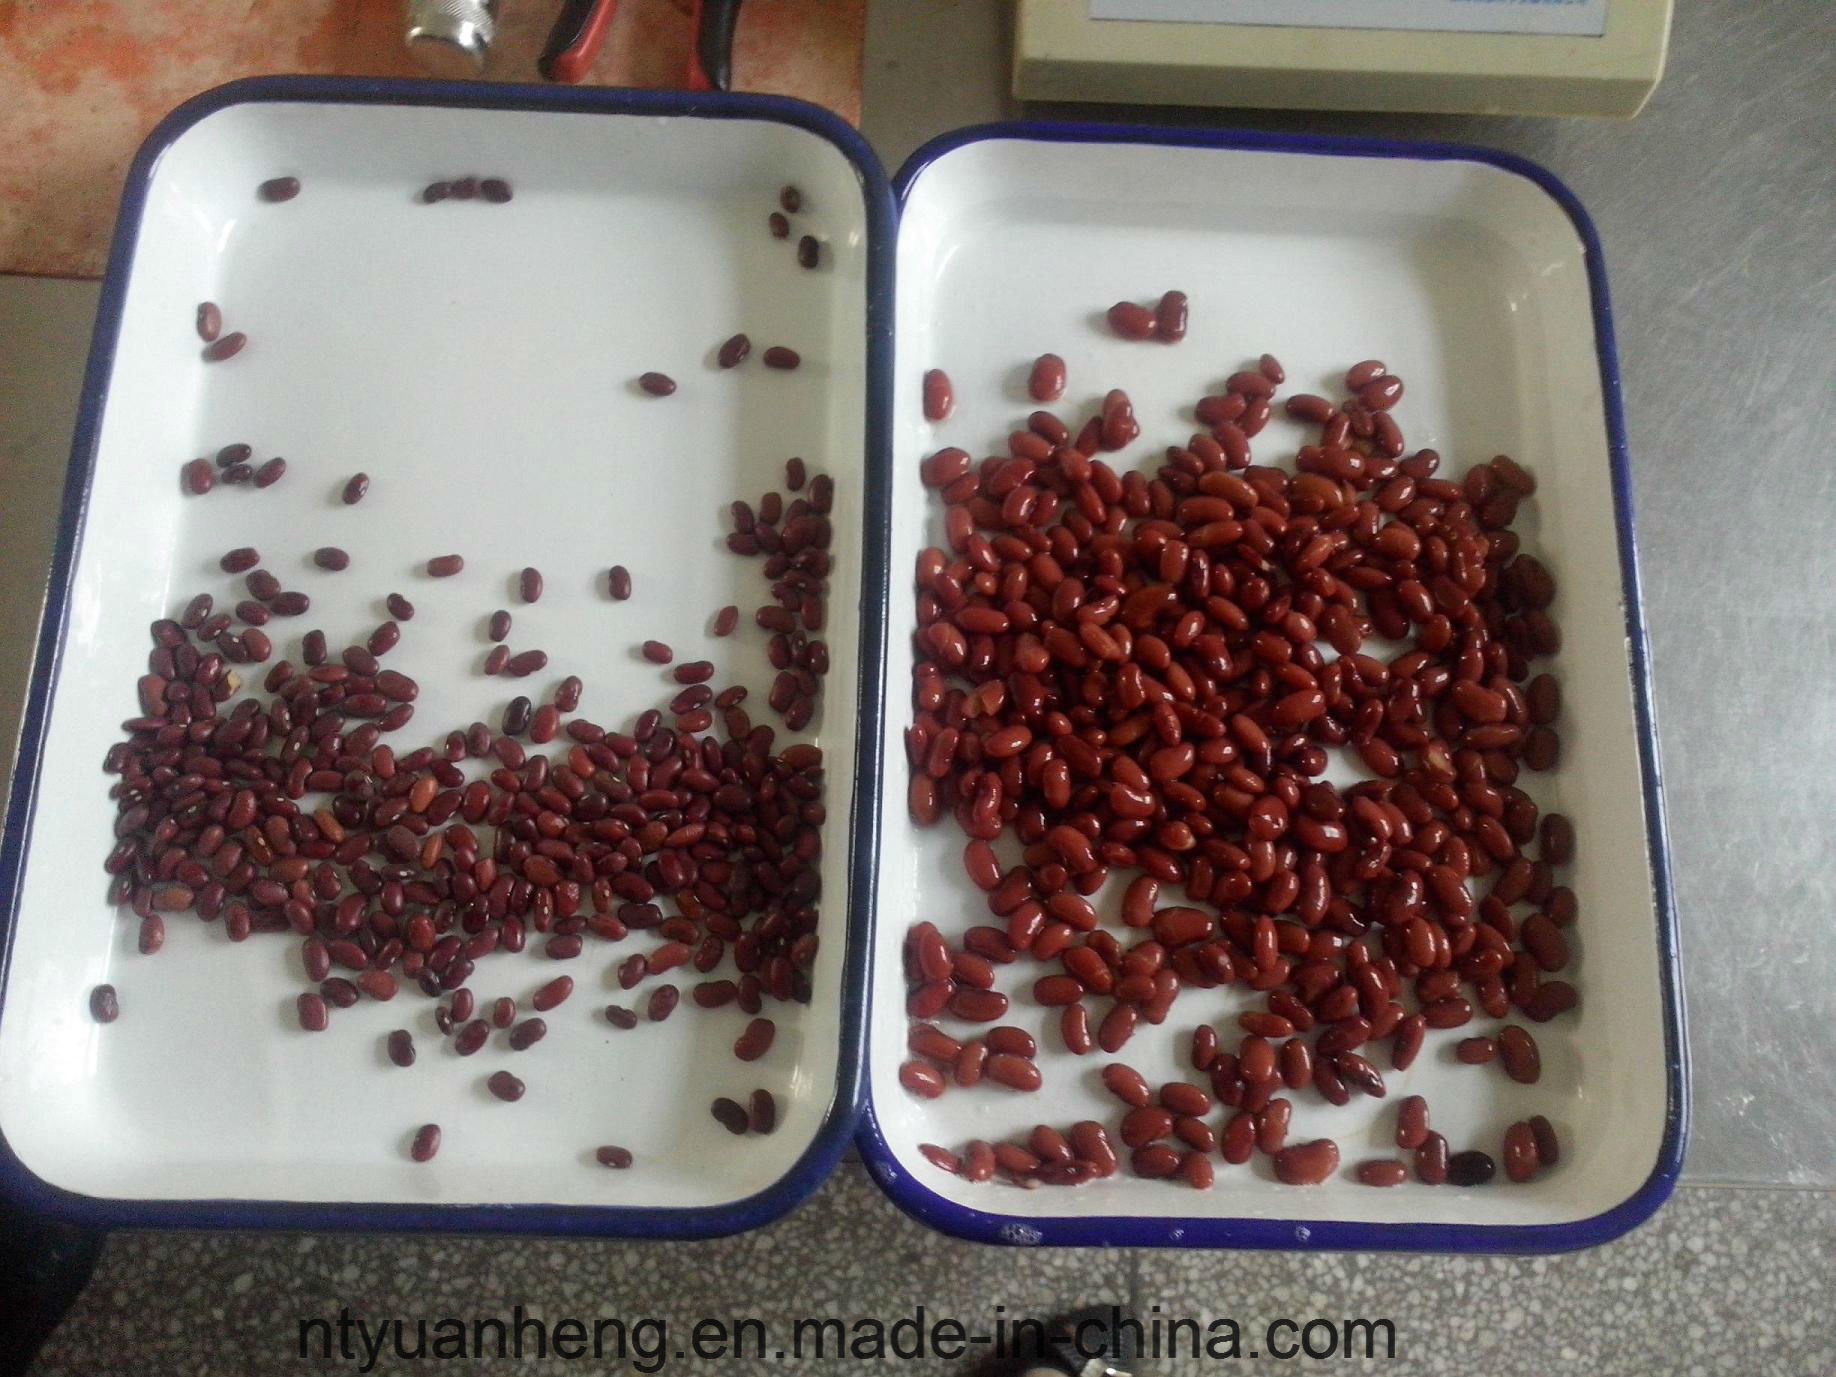 Canned Dark Red Speckled Kidney Beans for Eating